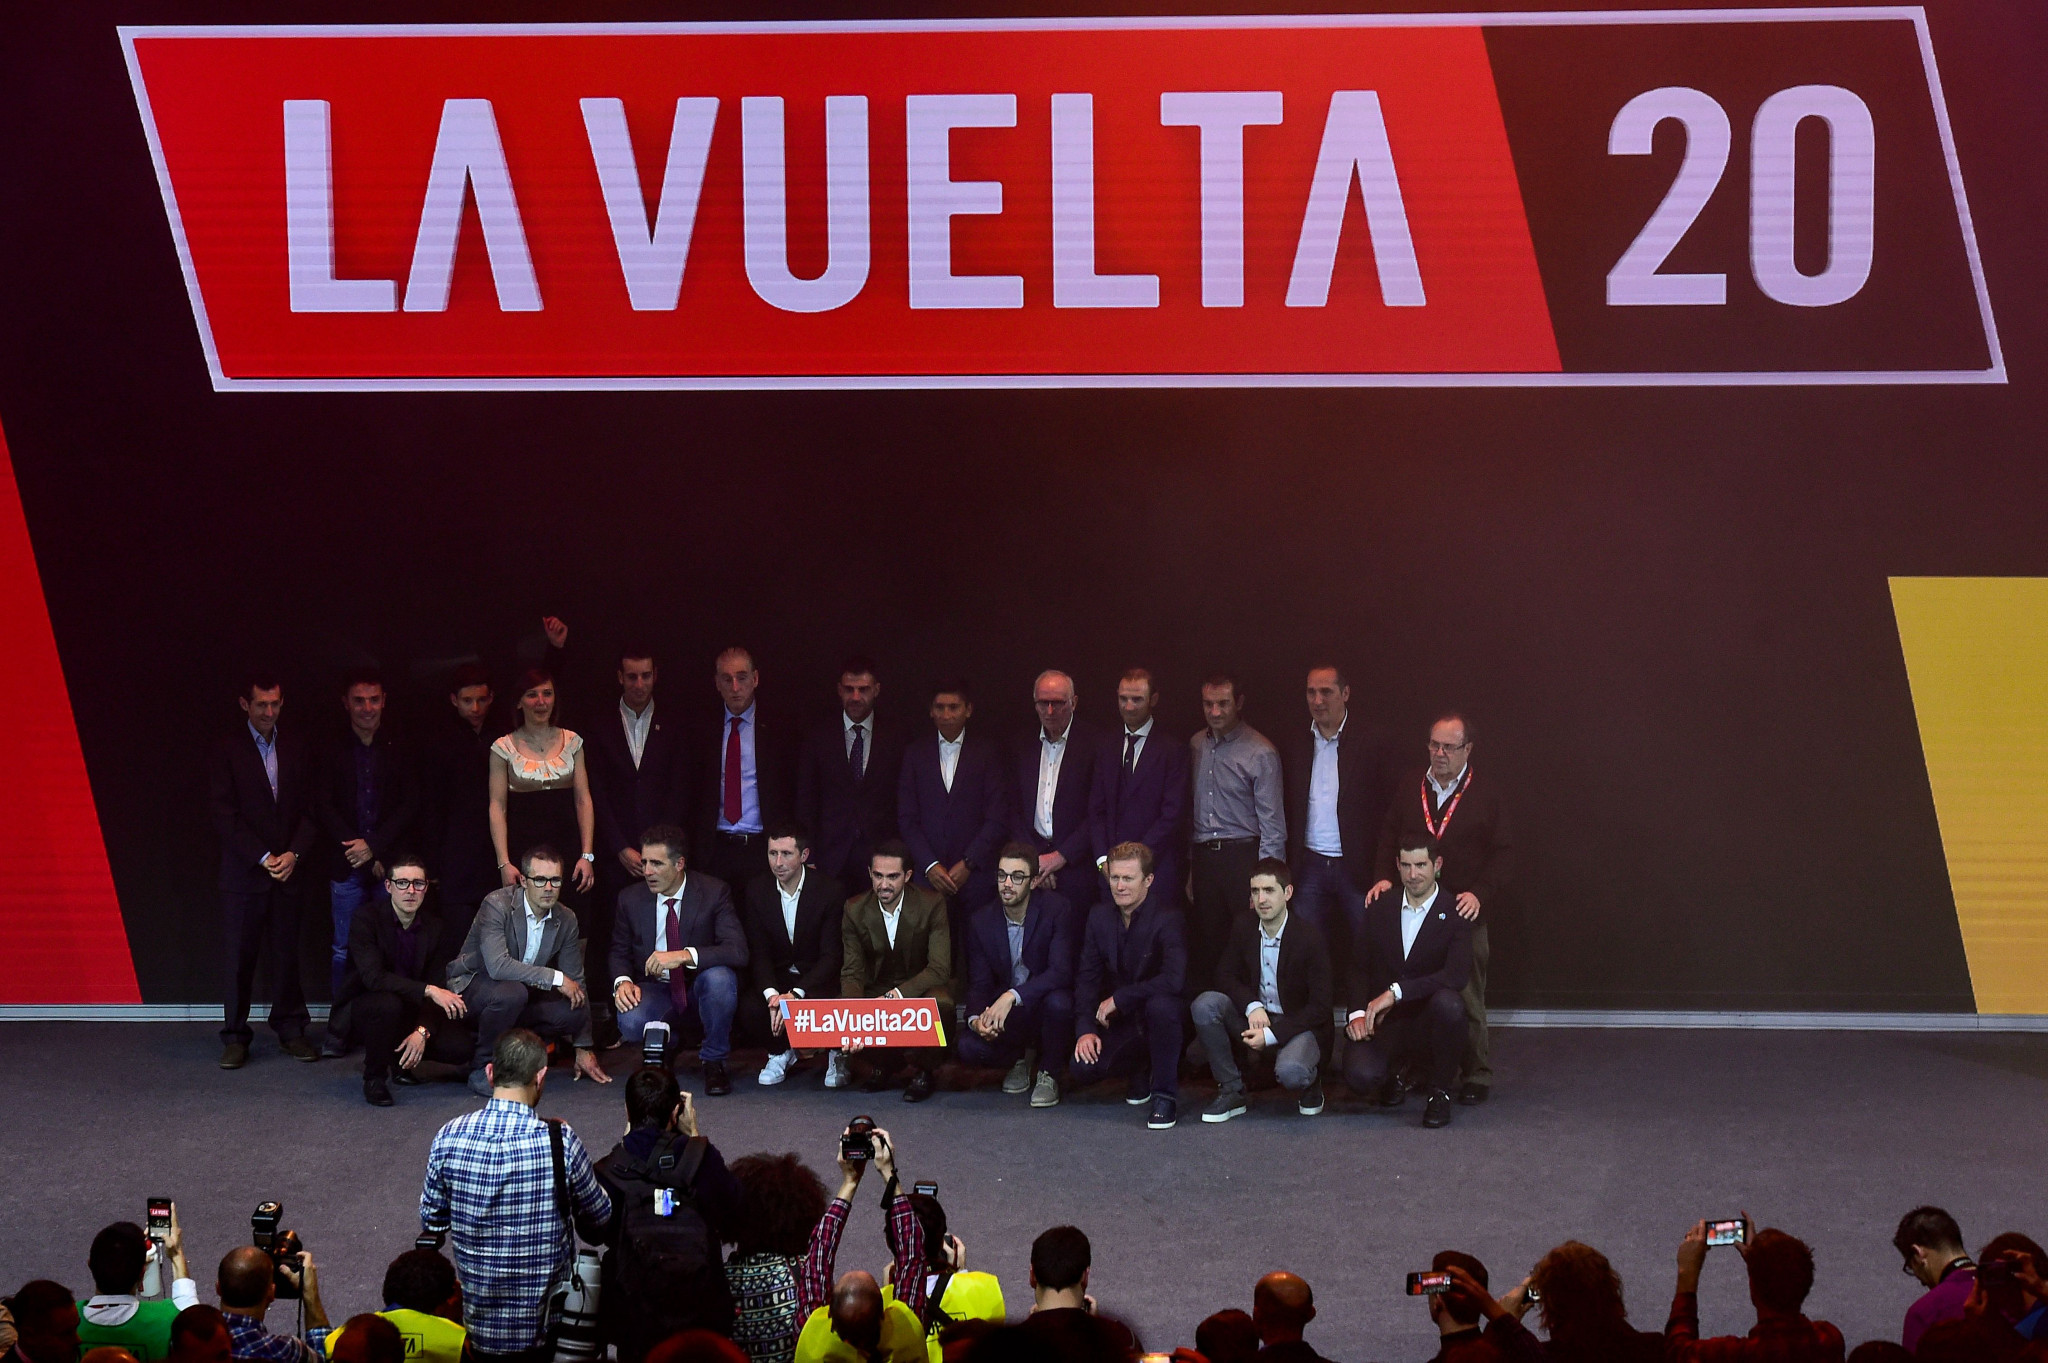 Organisers have confirmed the 22 teams for this year's Vuelta a España ©Getty Images